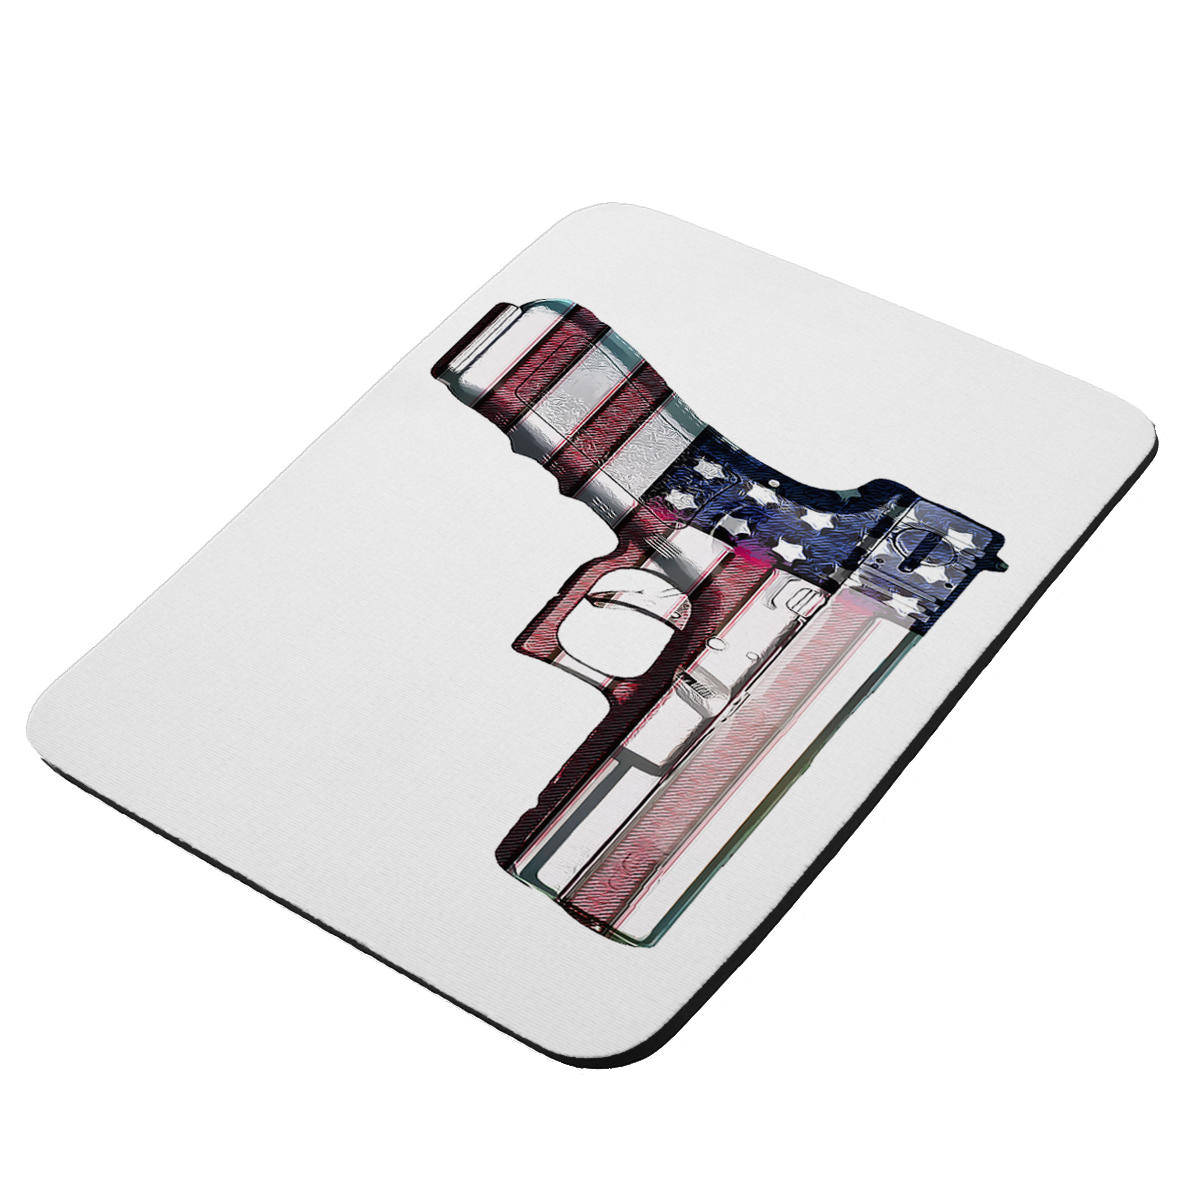 American Flag Gun Rights  - KuzmarK Mousepad / Hot Pad / Trivet